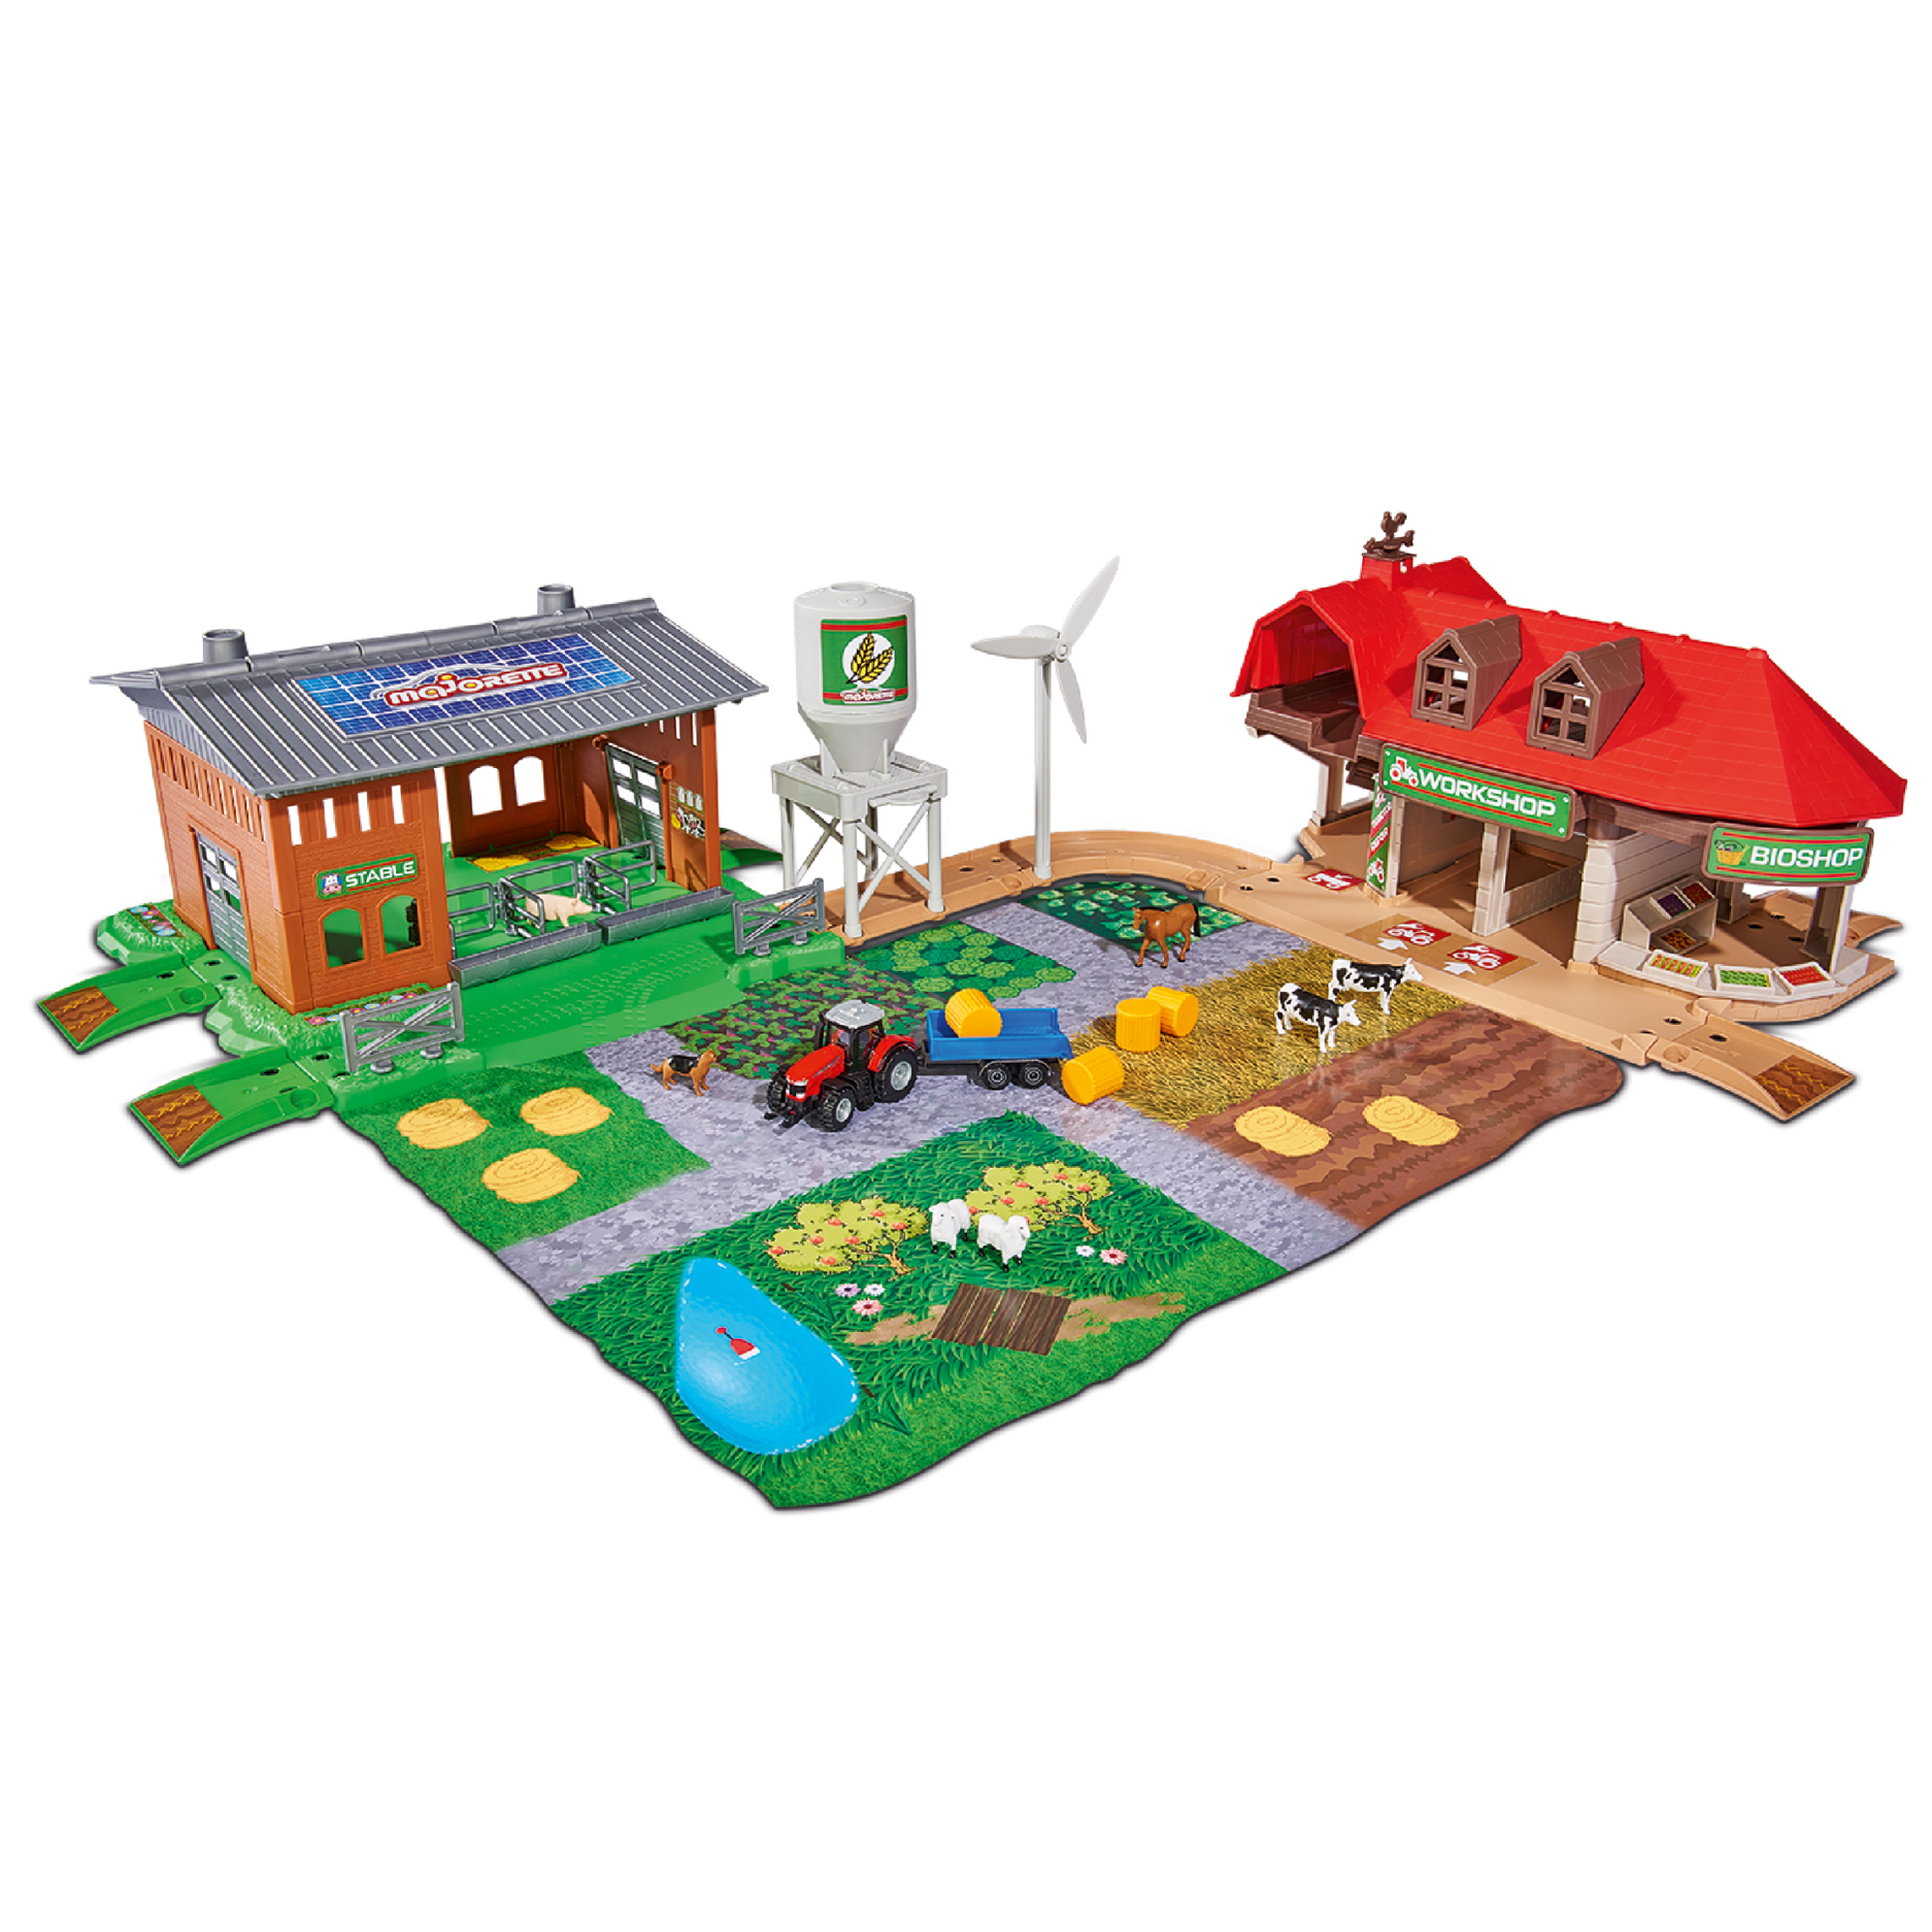 Majorette Creatix Farm 60 Piece Playset with 1 Tractor and Trailer by Dickie Toys